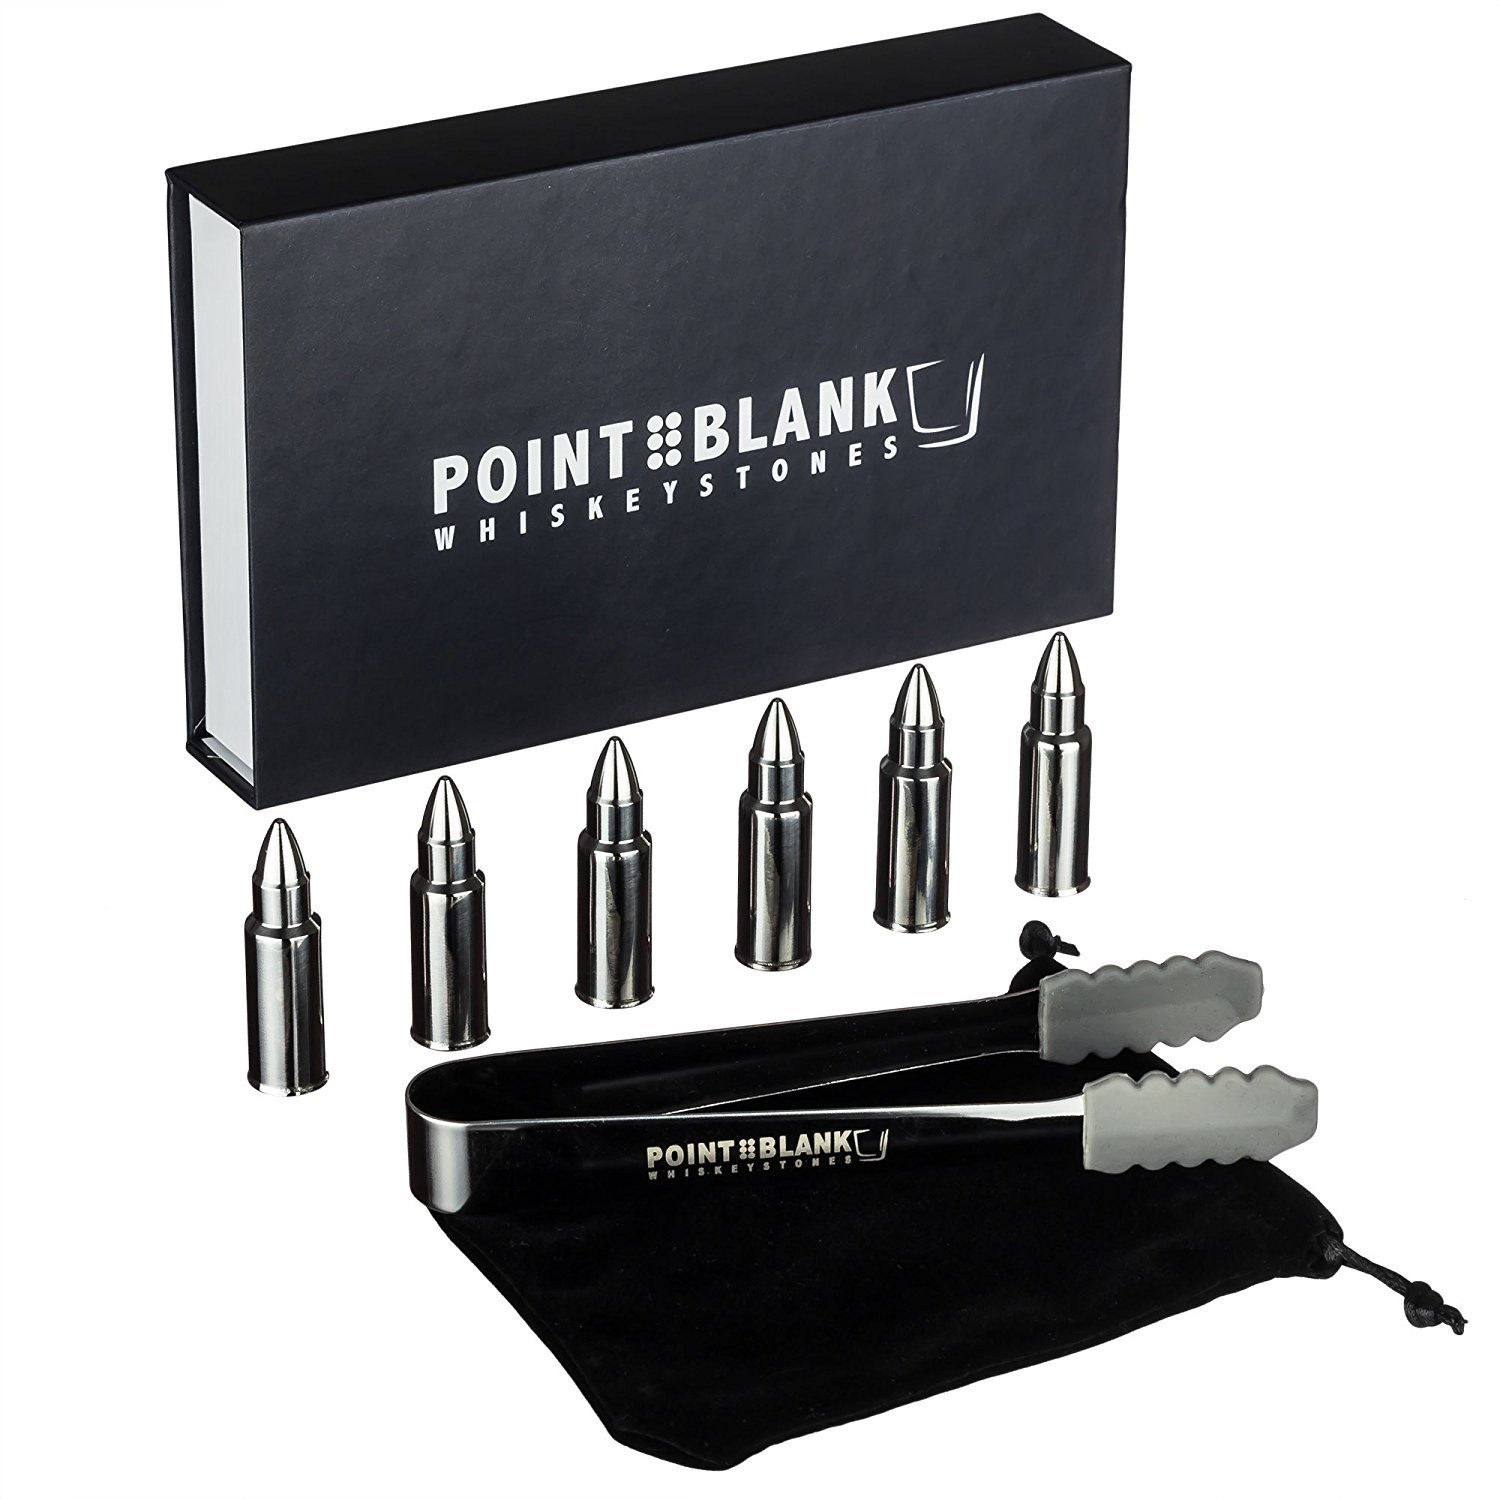 Pointblank Stainless Steel Bullet Shaped Whiskey Stones, Reusable, Stainless Steel Drink Chillers with Tongs and Storage Bag (Set of 6) COMIN18JU088228